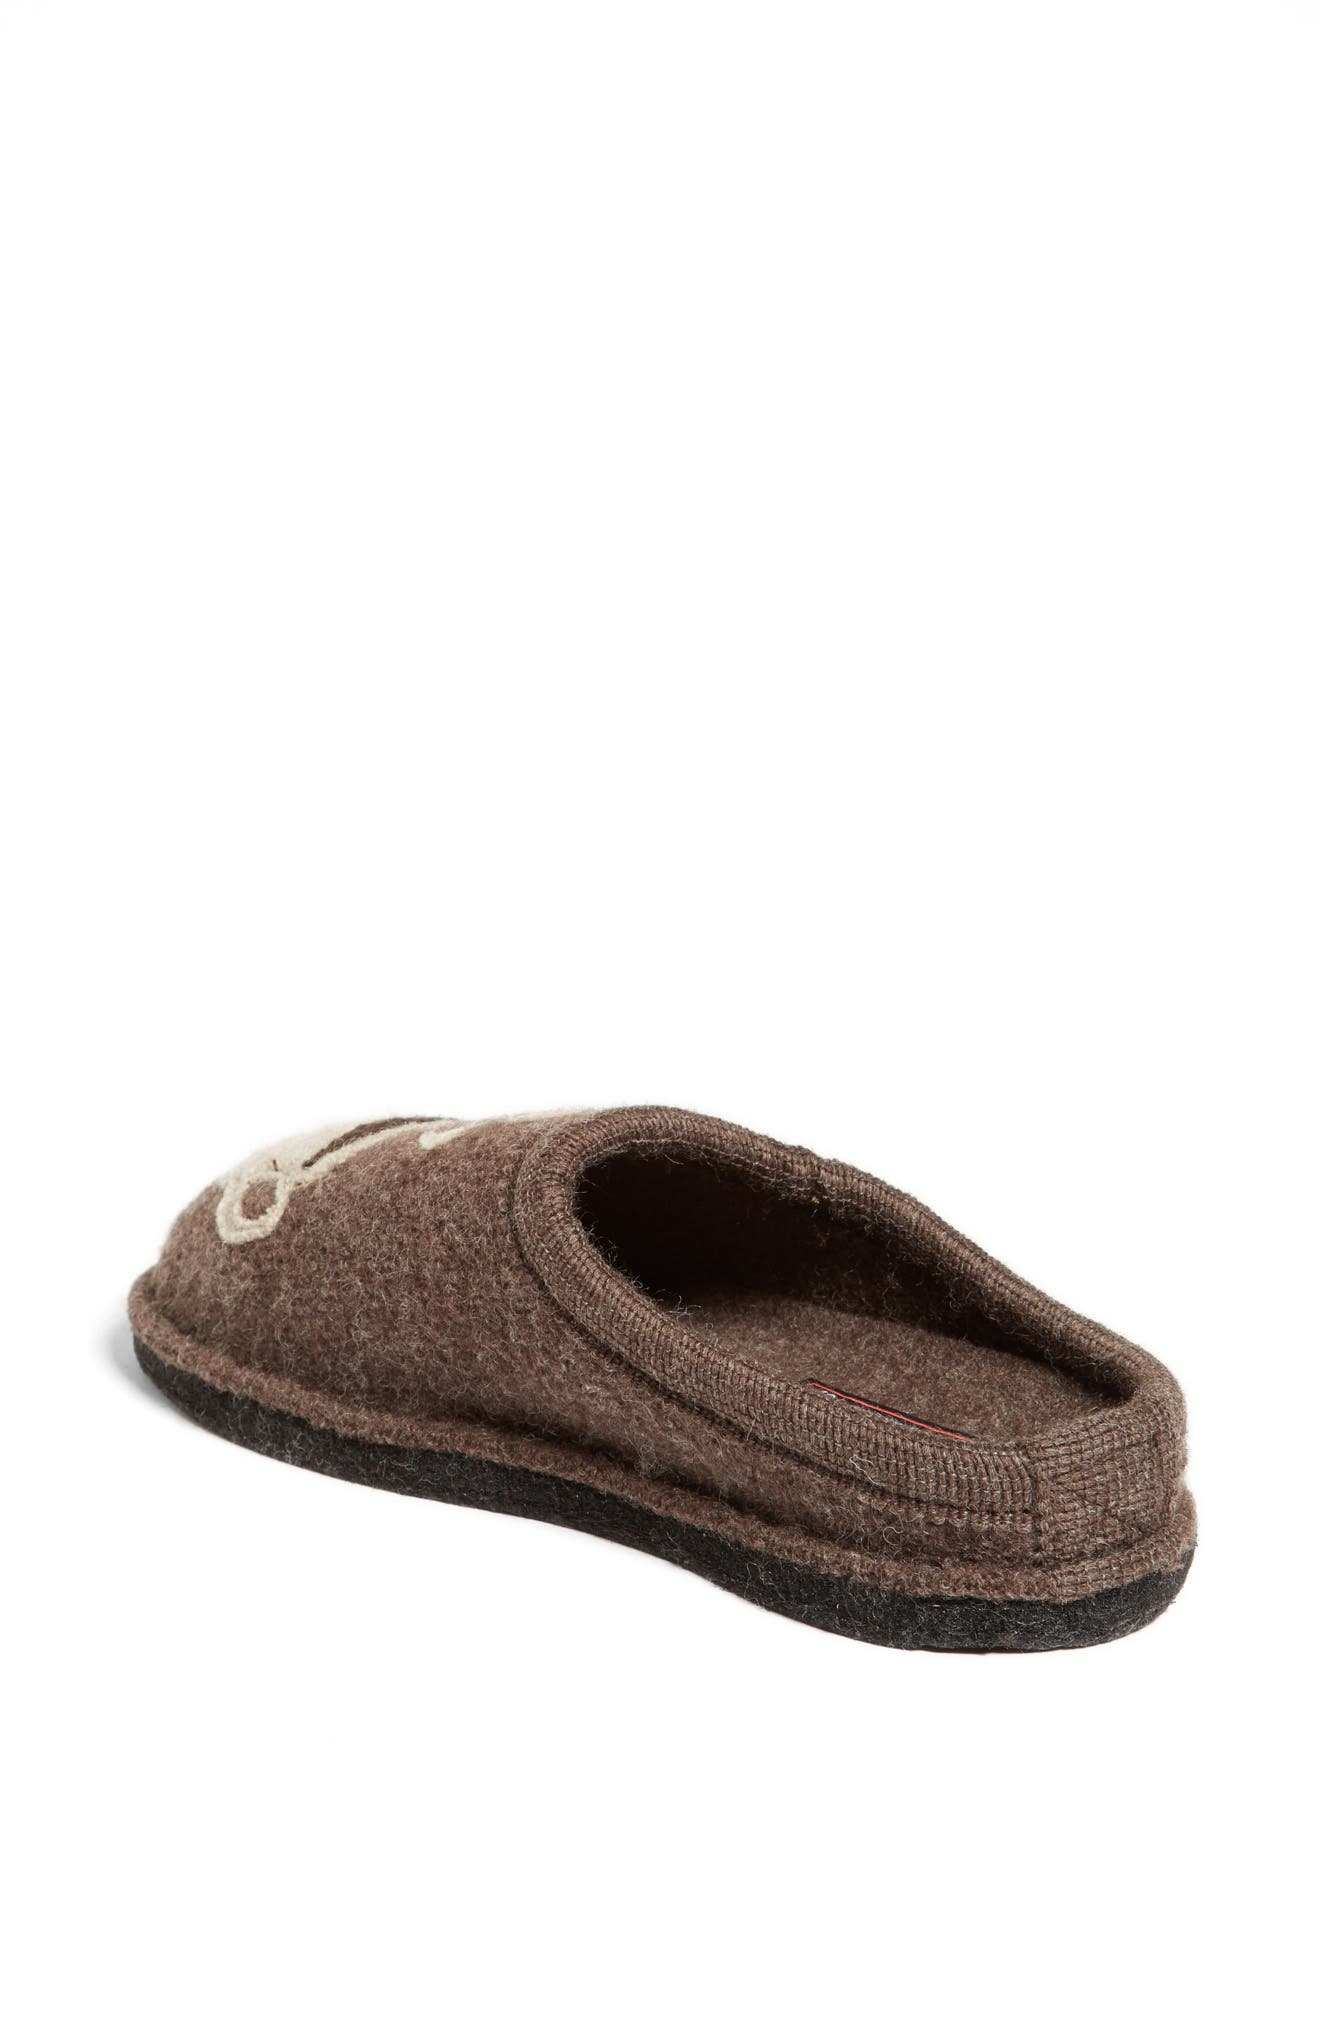 'Coffee' Slipper,                             Main thumbnail 1, color,                             EARTH WOOL